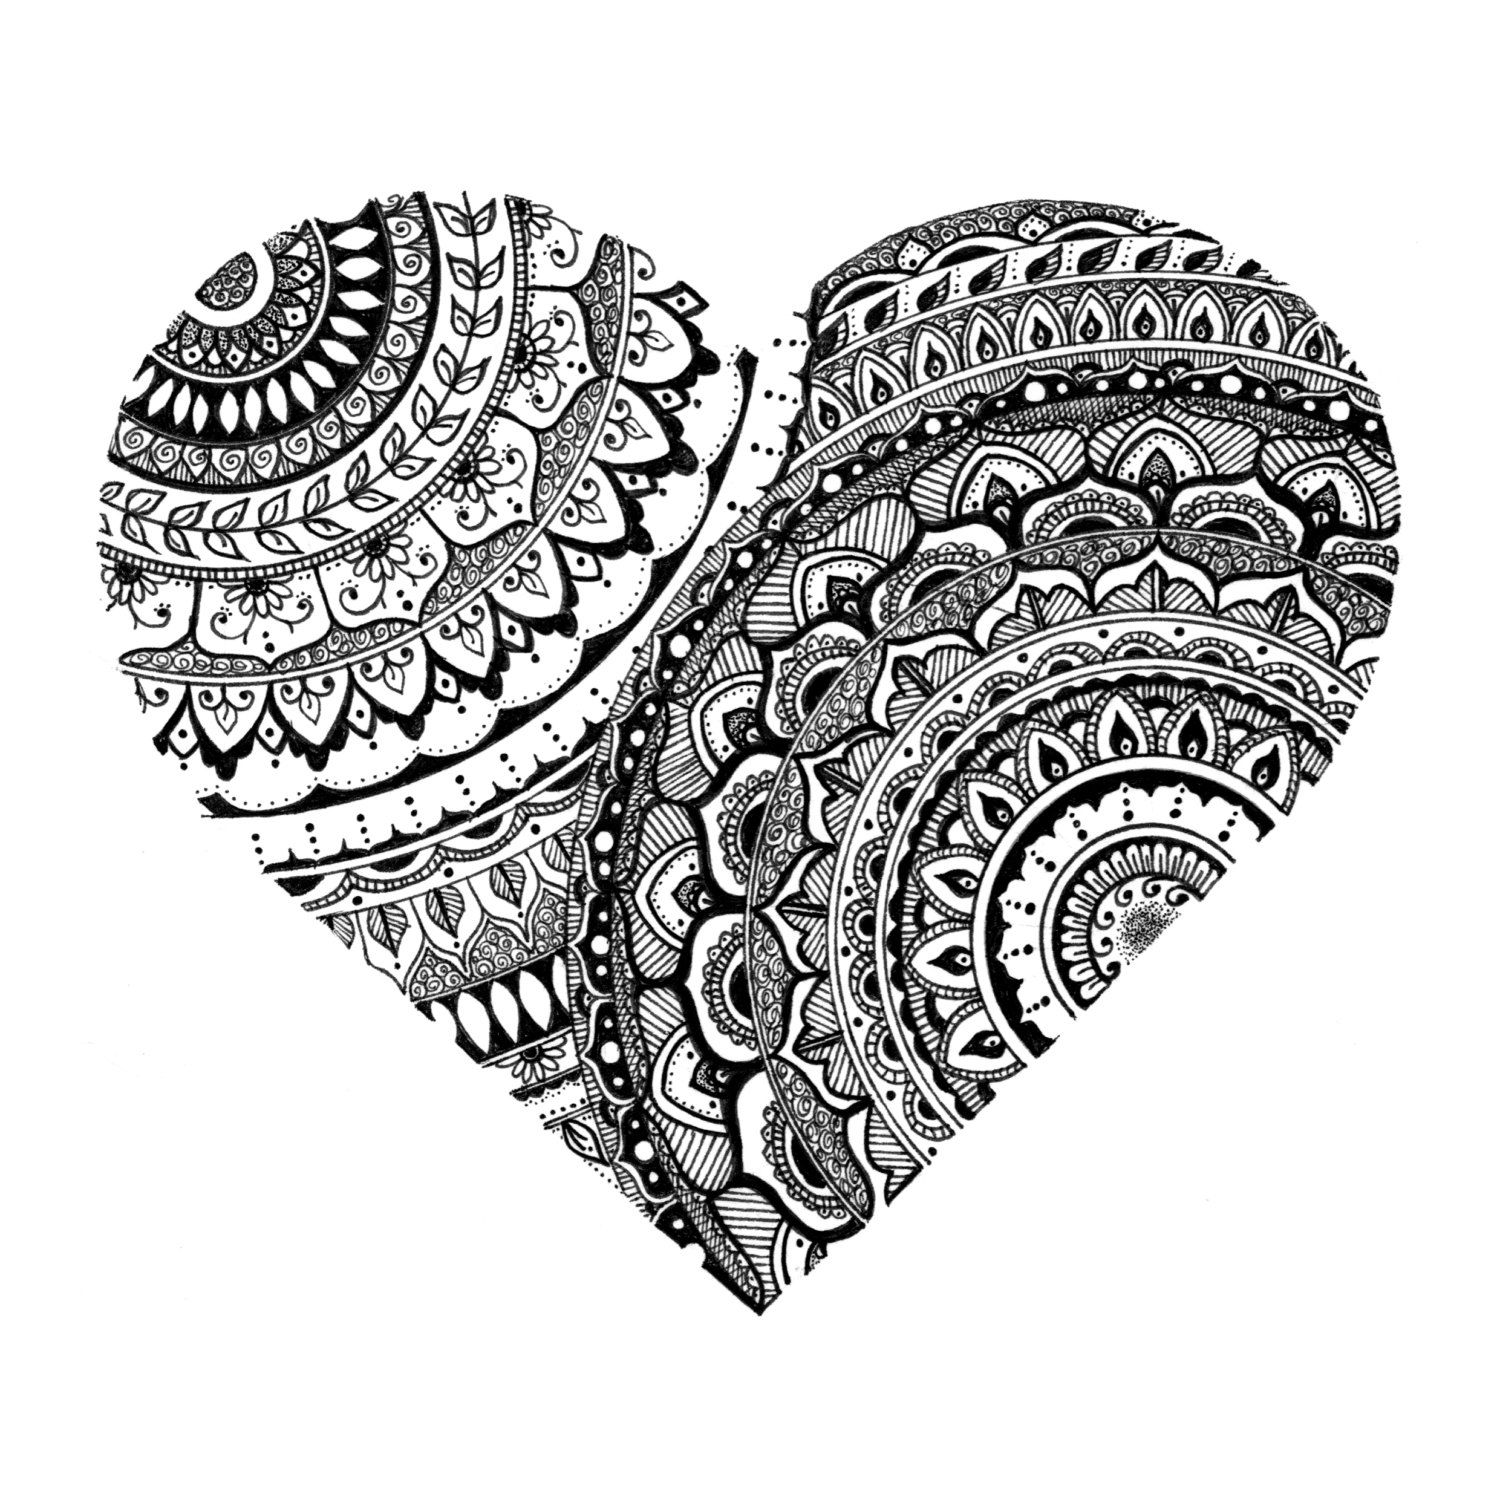 Printable Heart Mandala Illustration